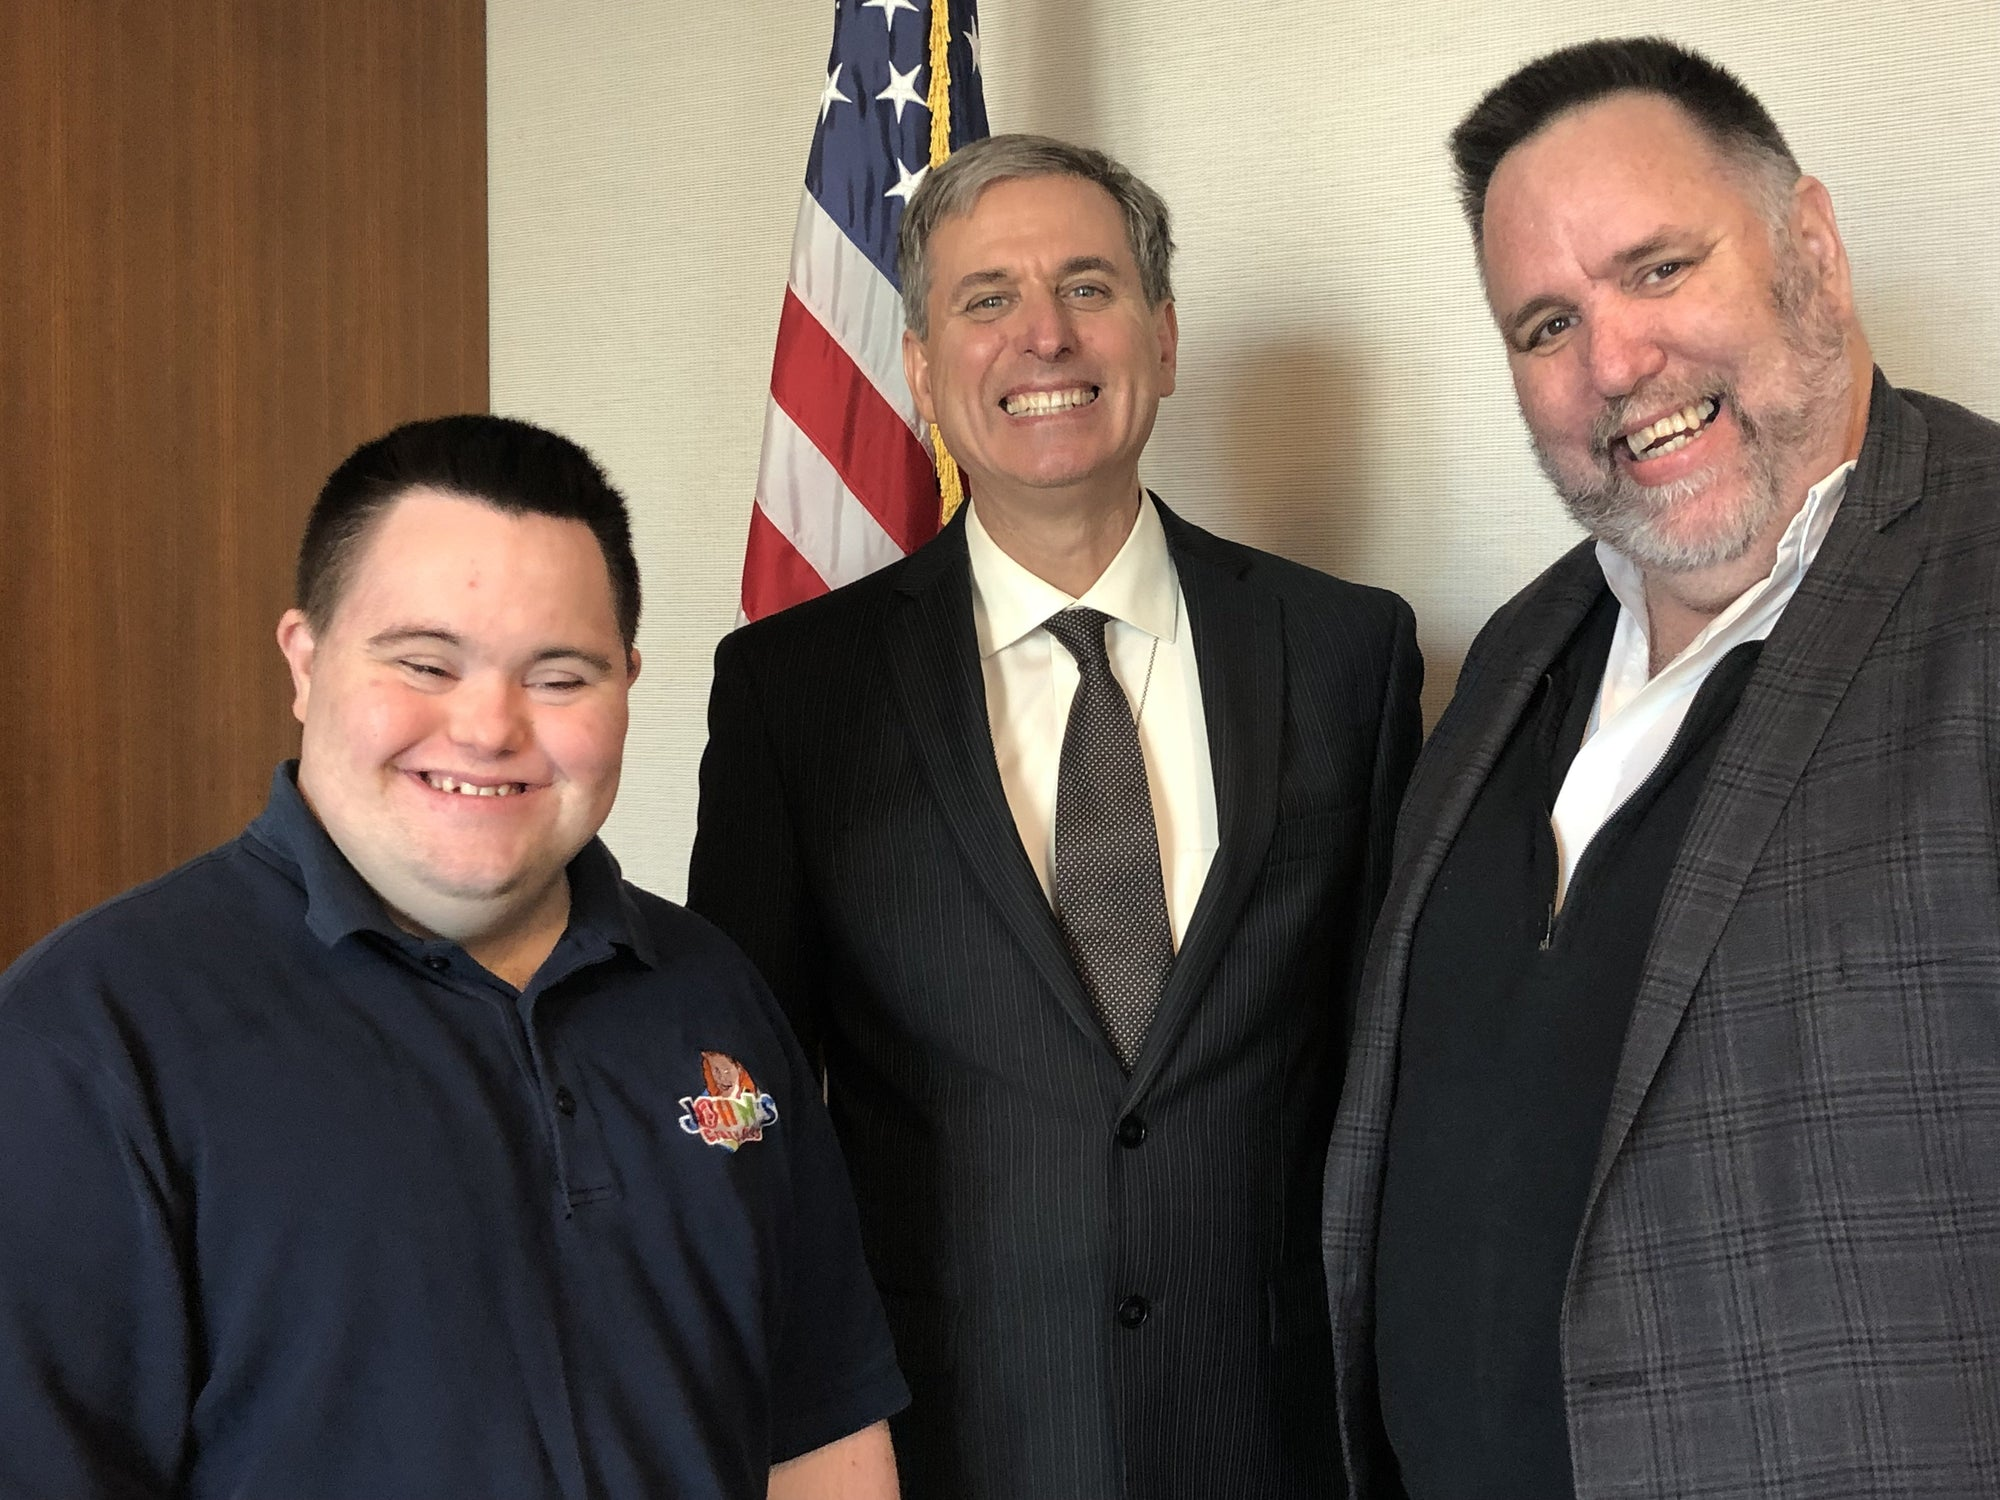 John and Mark Cronin Spoke at the U.S. State Department on Issues of Entrepreneurism and Empowering People with Differing Abilities